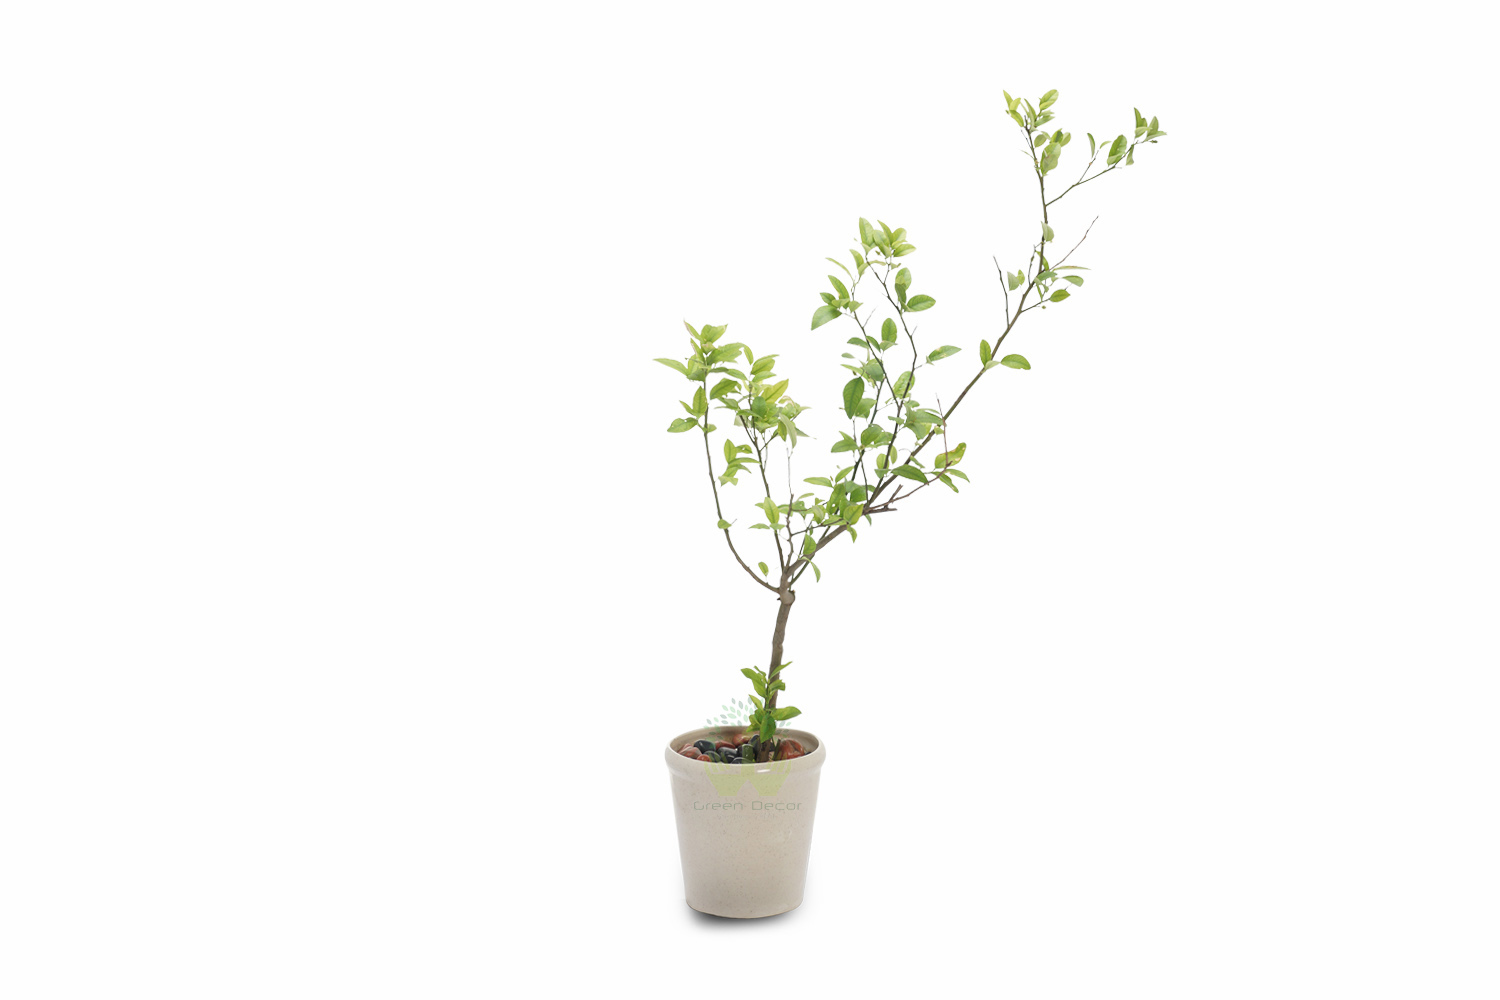 Buy Orange Plants , White Pots and seeds in Delhi NCR by the best online nursery shop Greendecor.